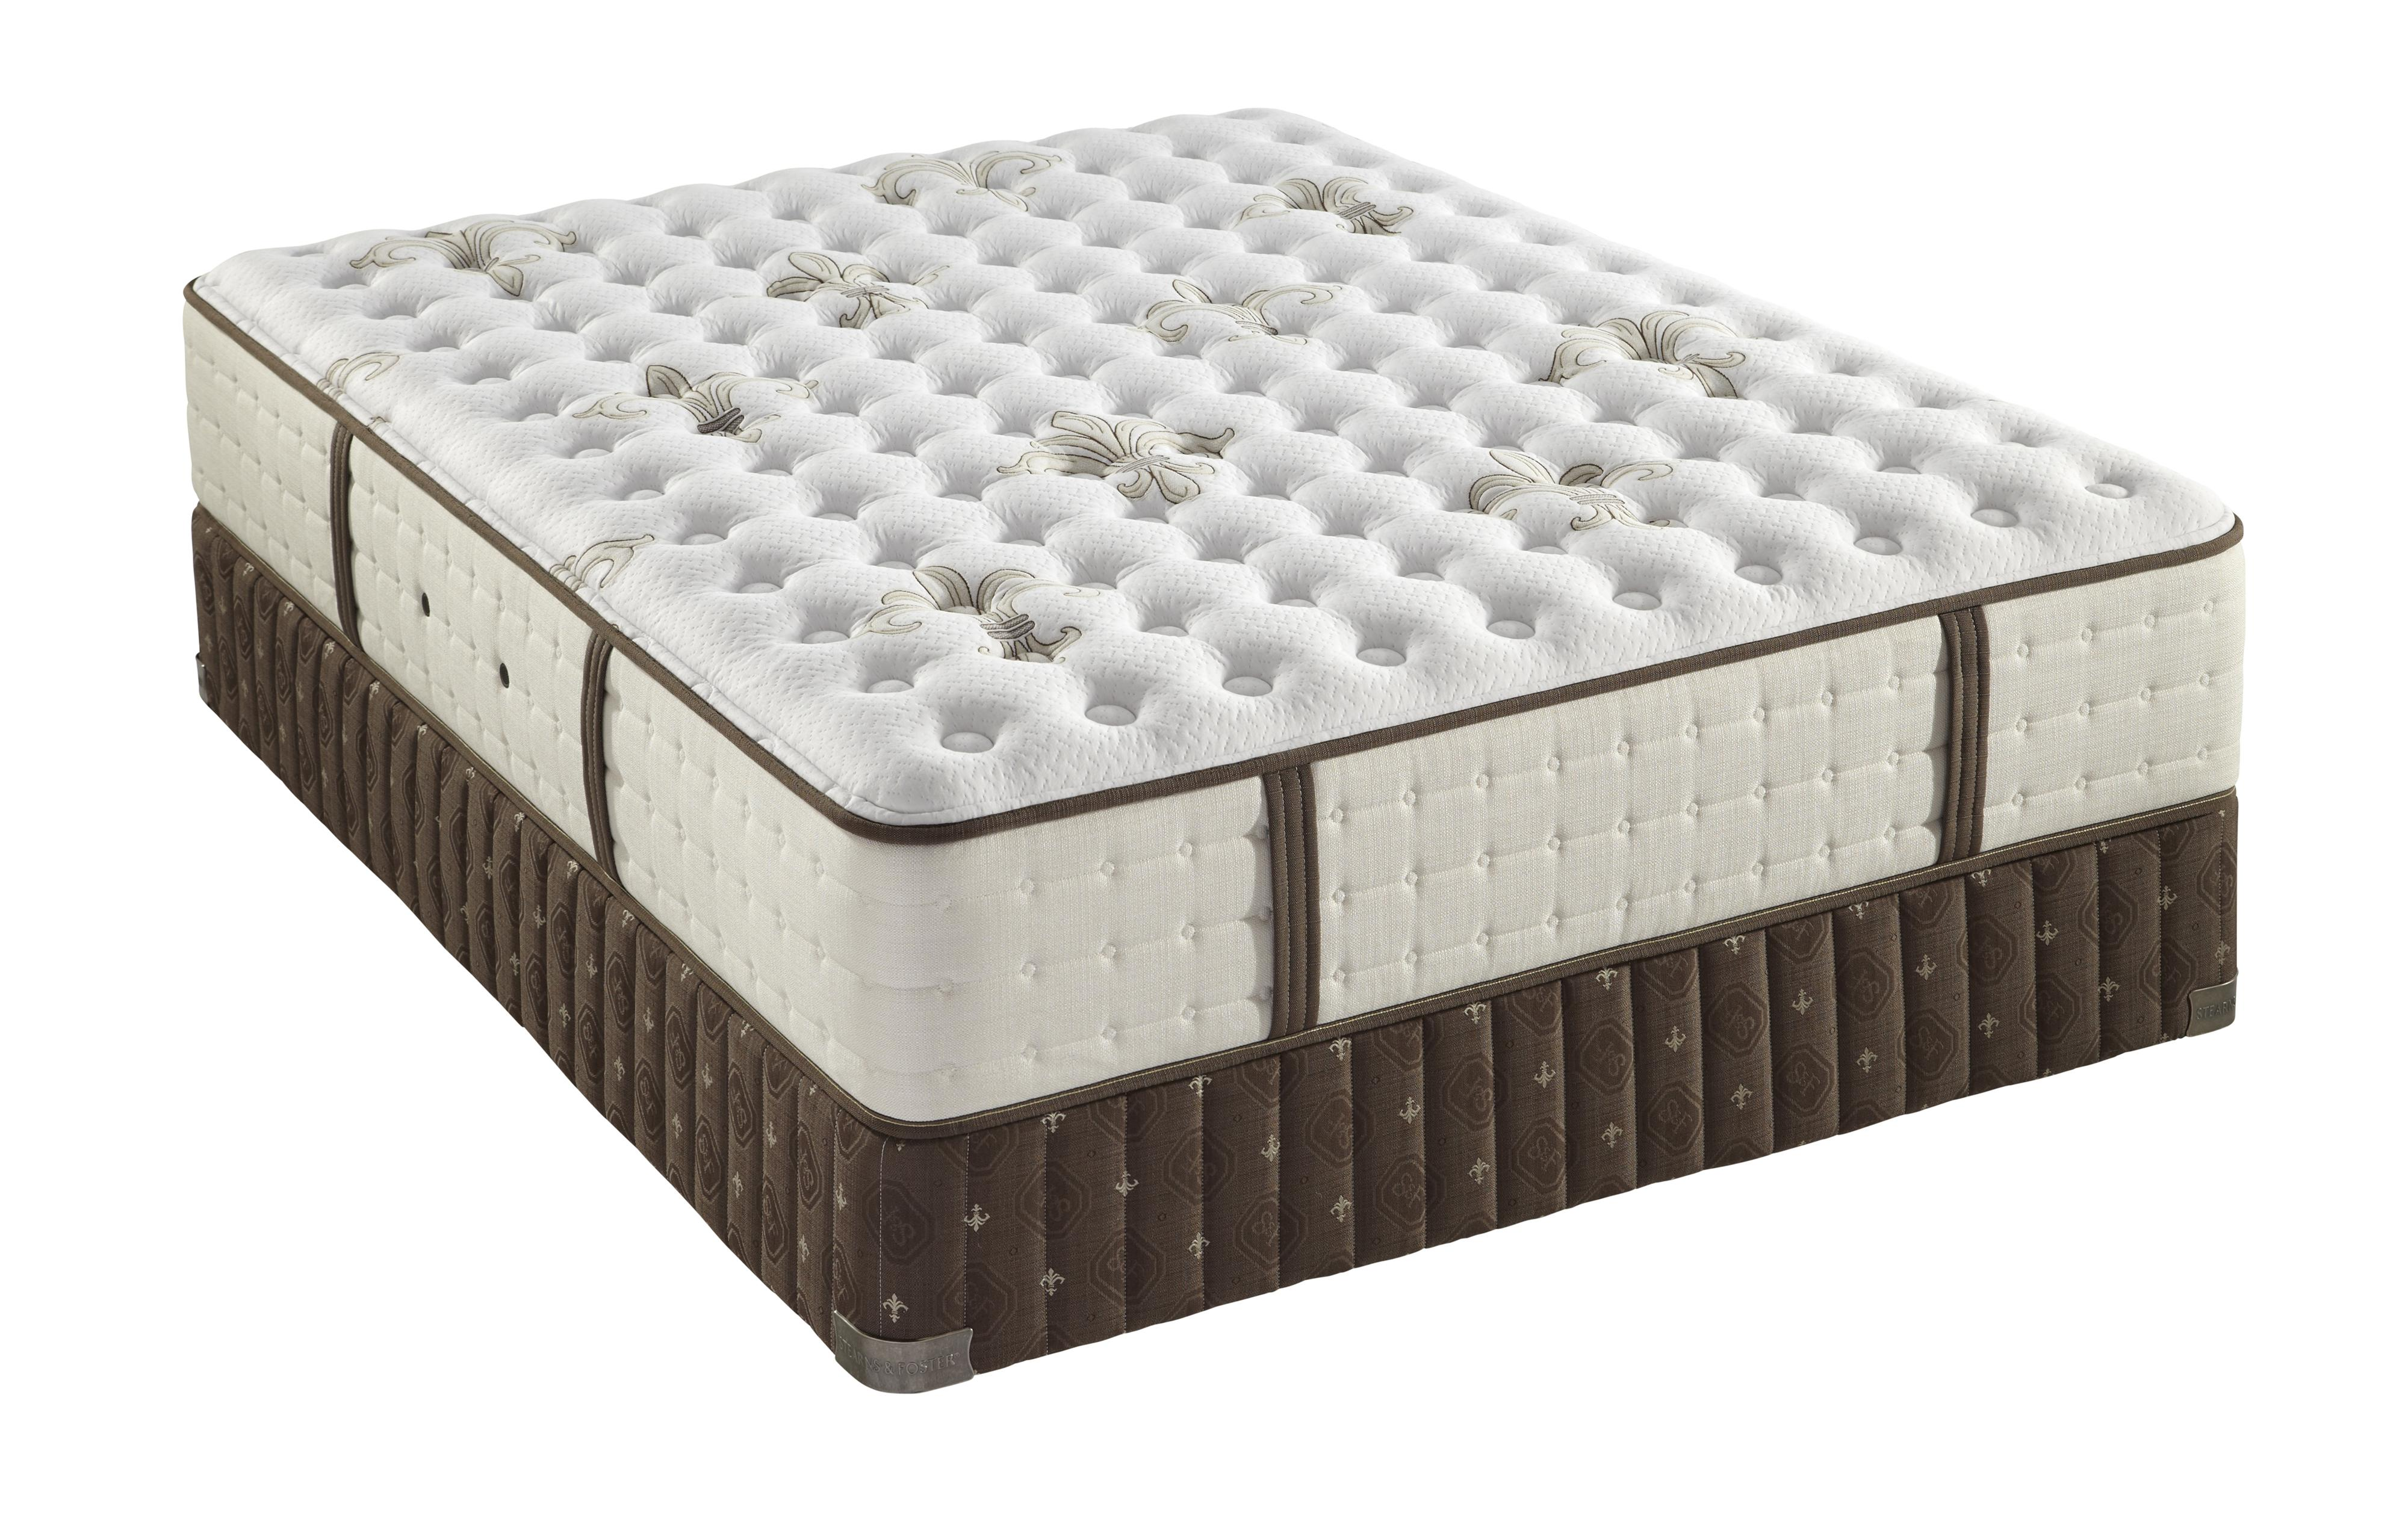 Stearns & Foster C2 Luxury Firm Tight Top  Full Luxury Firm Mattress - Item Number: LuxFirm-F